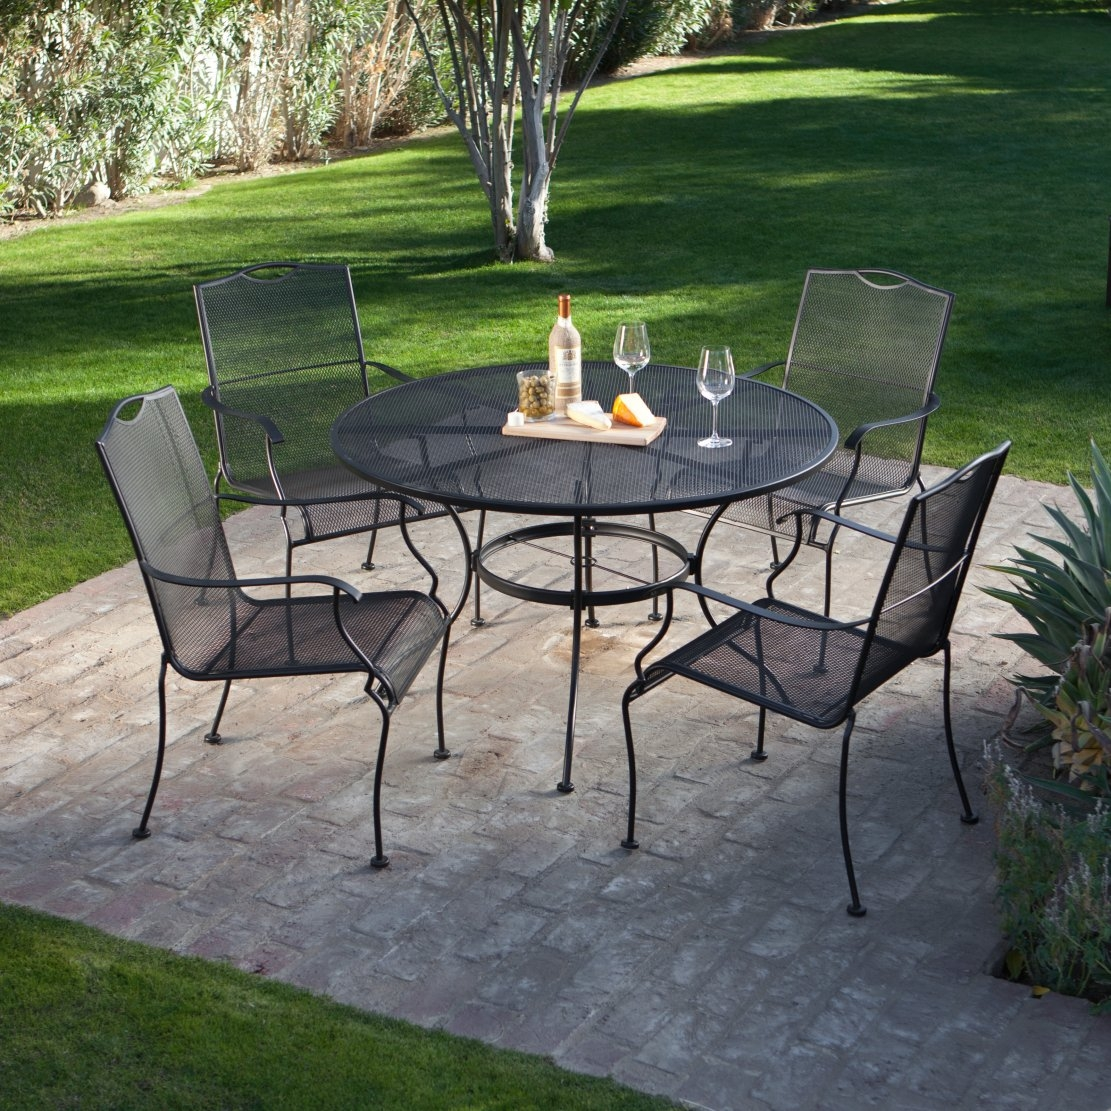 Metal outdoor dining furniture - 5 Piece Wrought Iron Patio Furniture Dining Set Seats 4